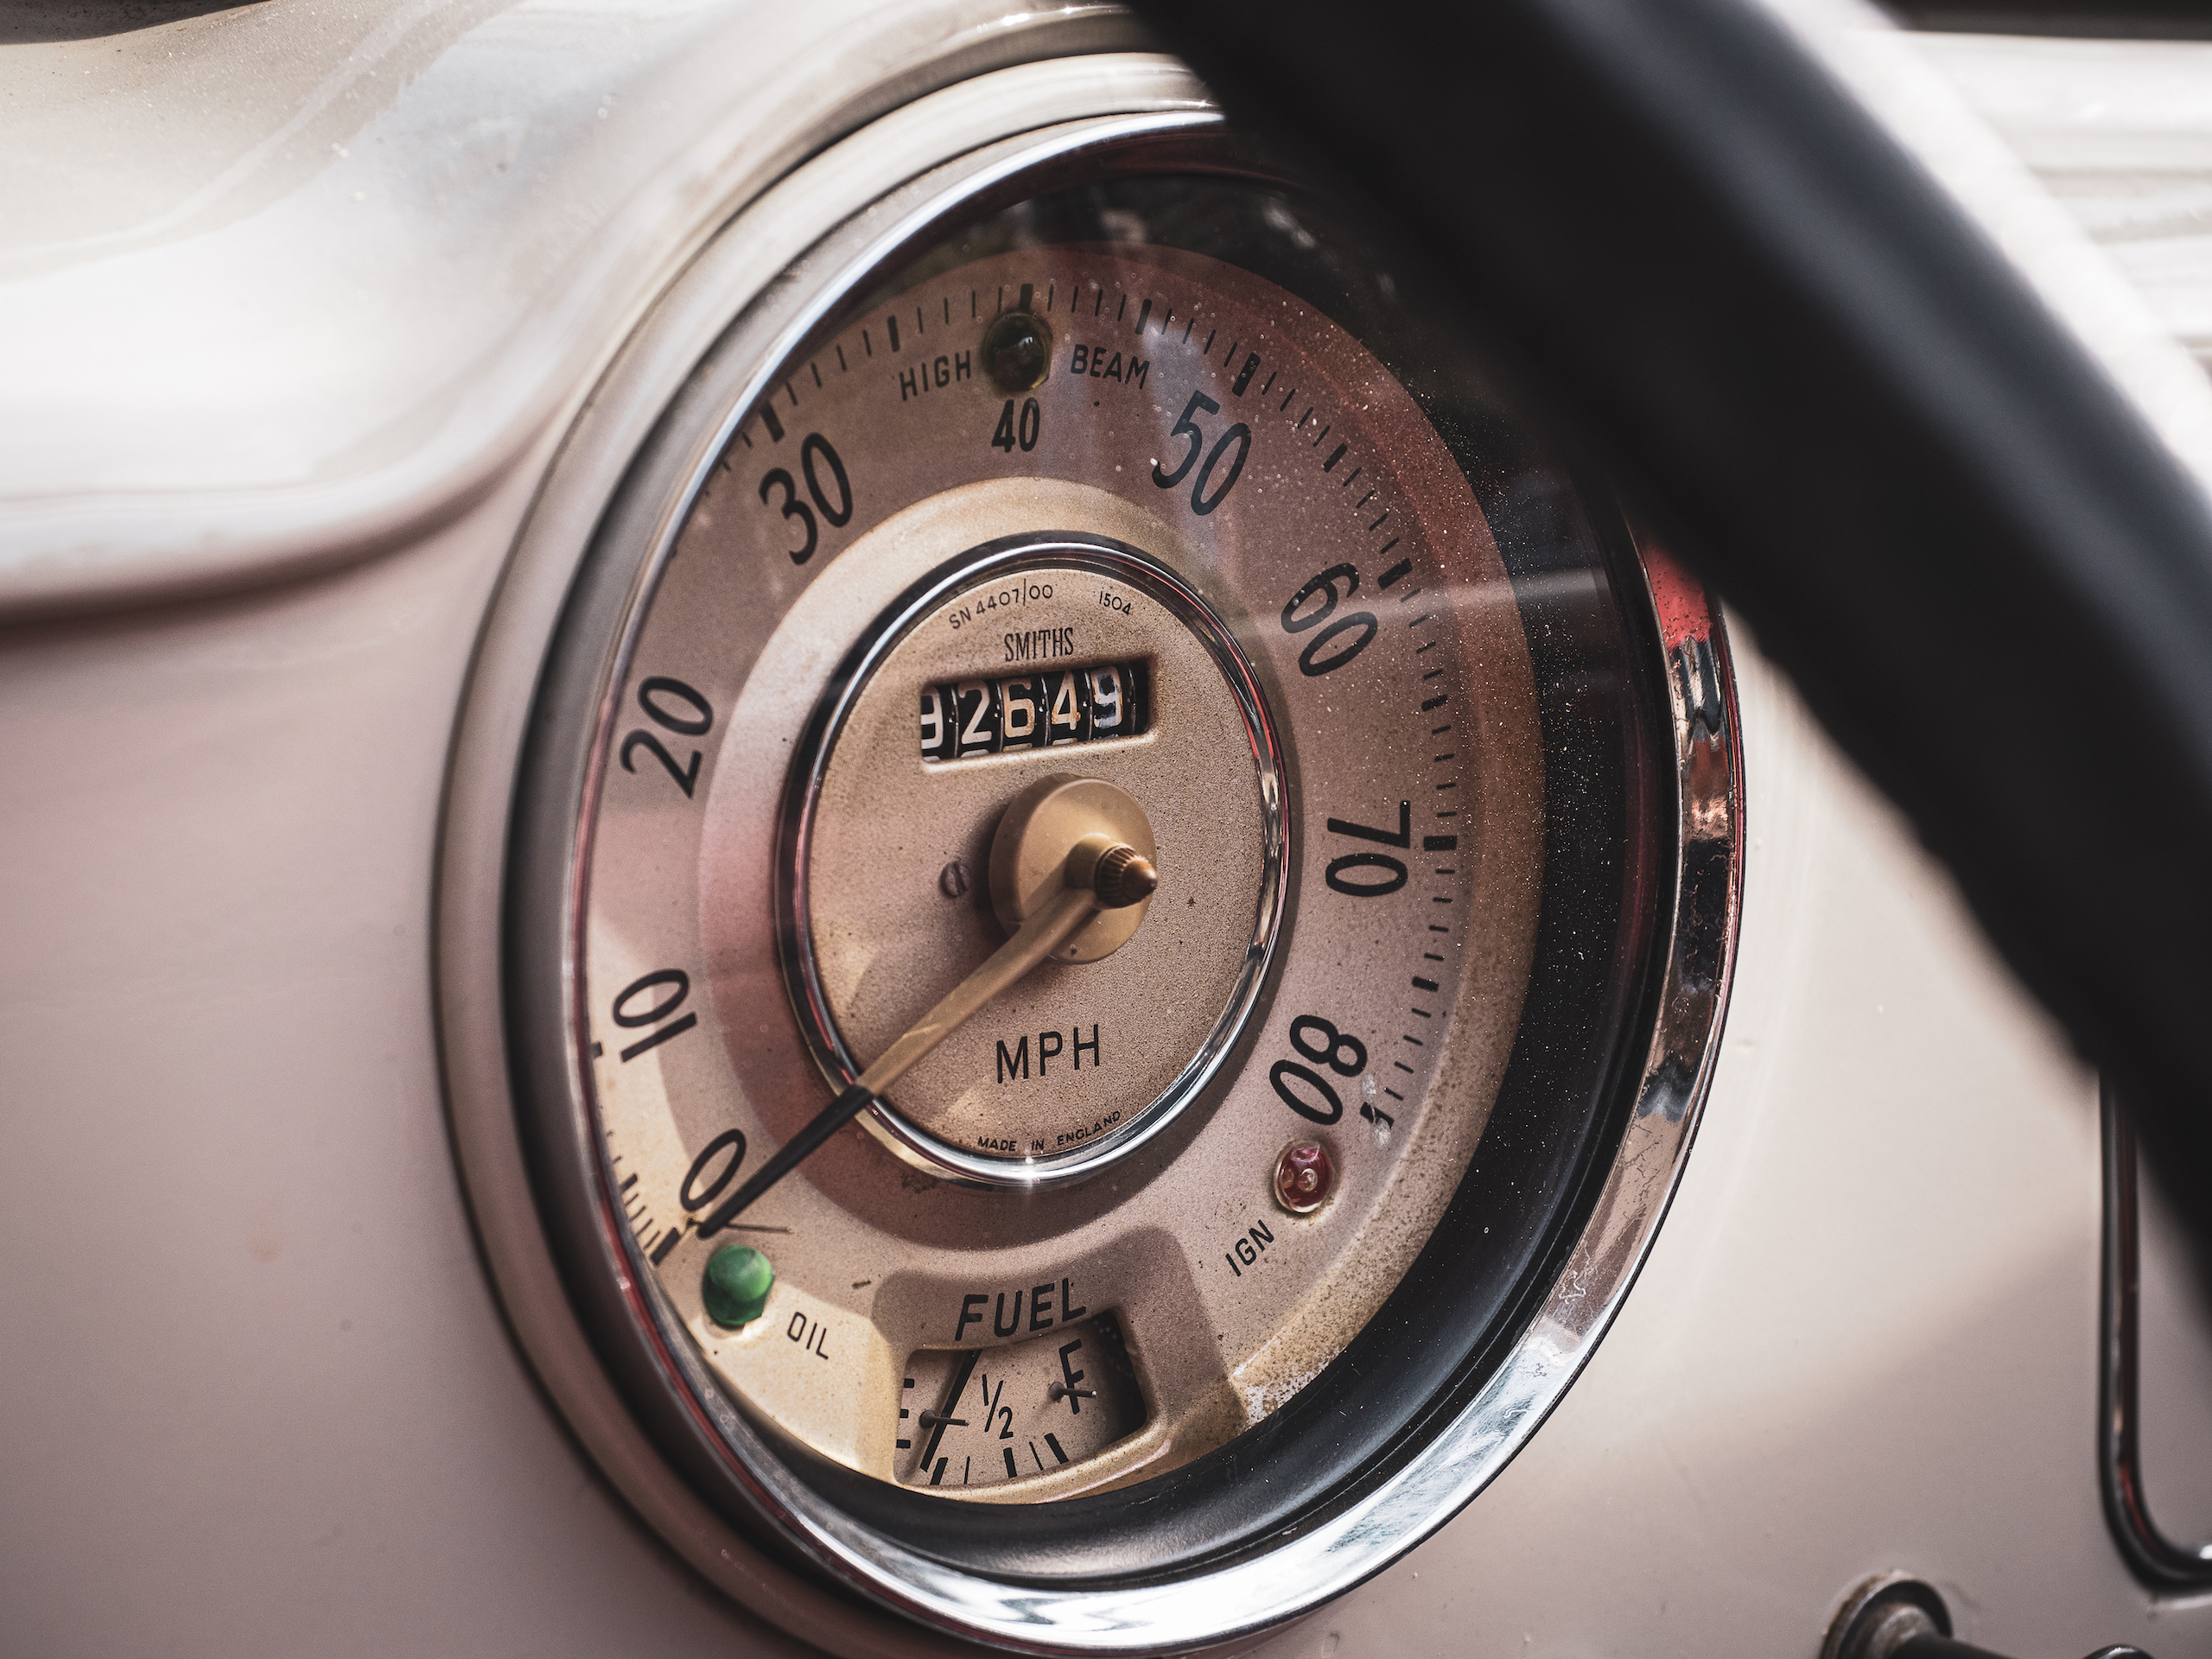 Morris Minor speedo gauge detail